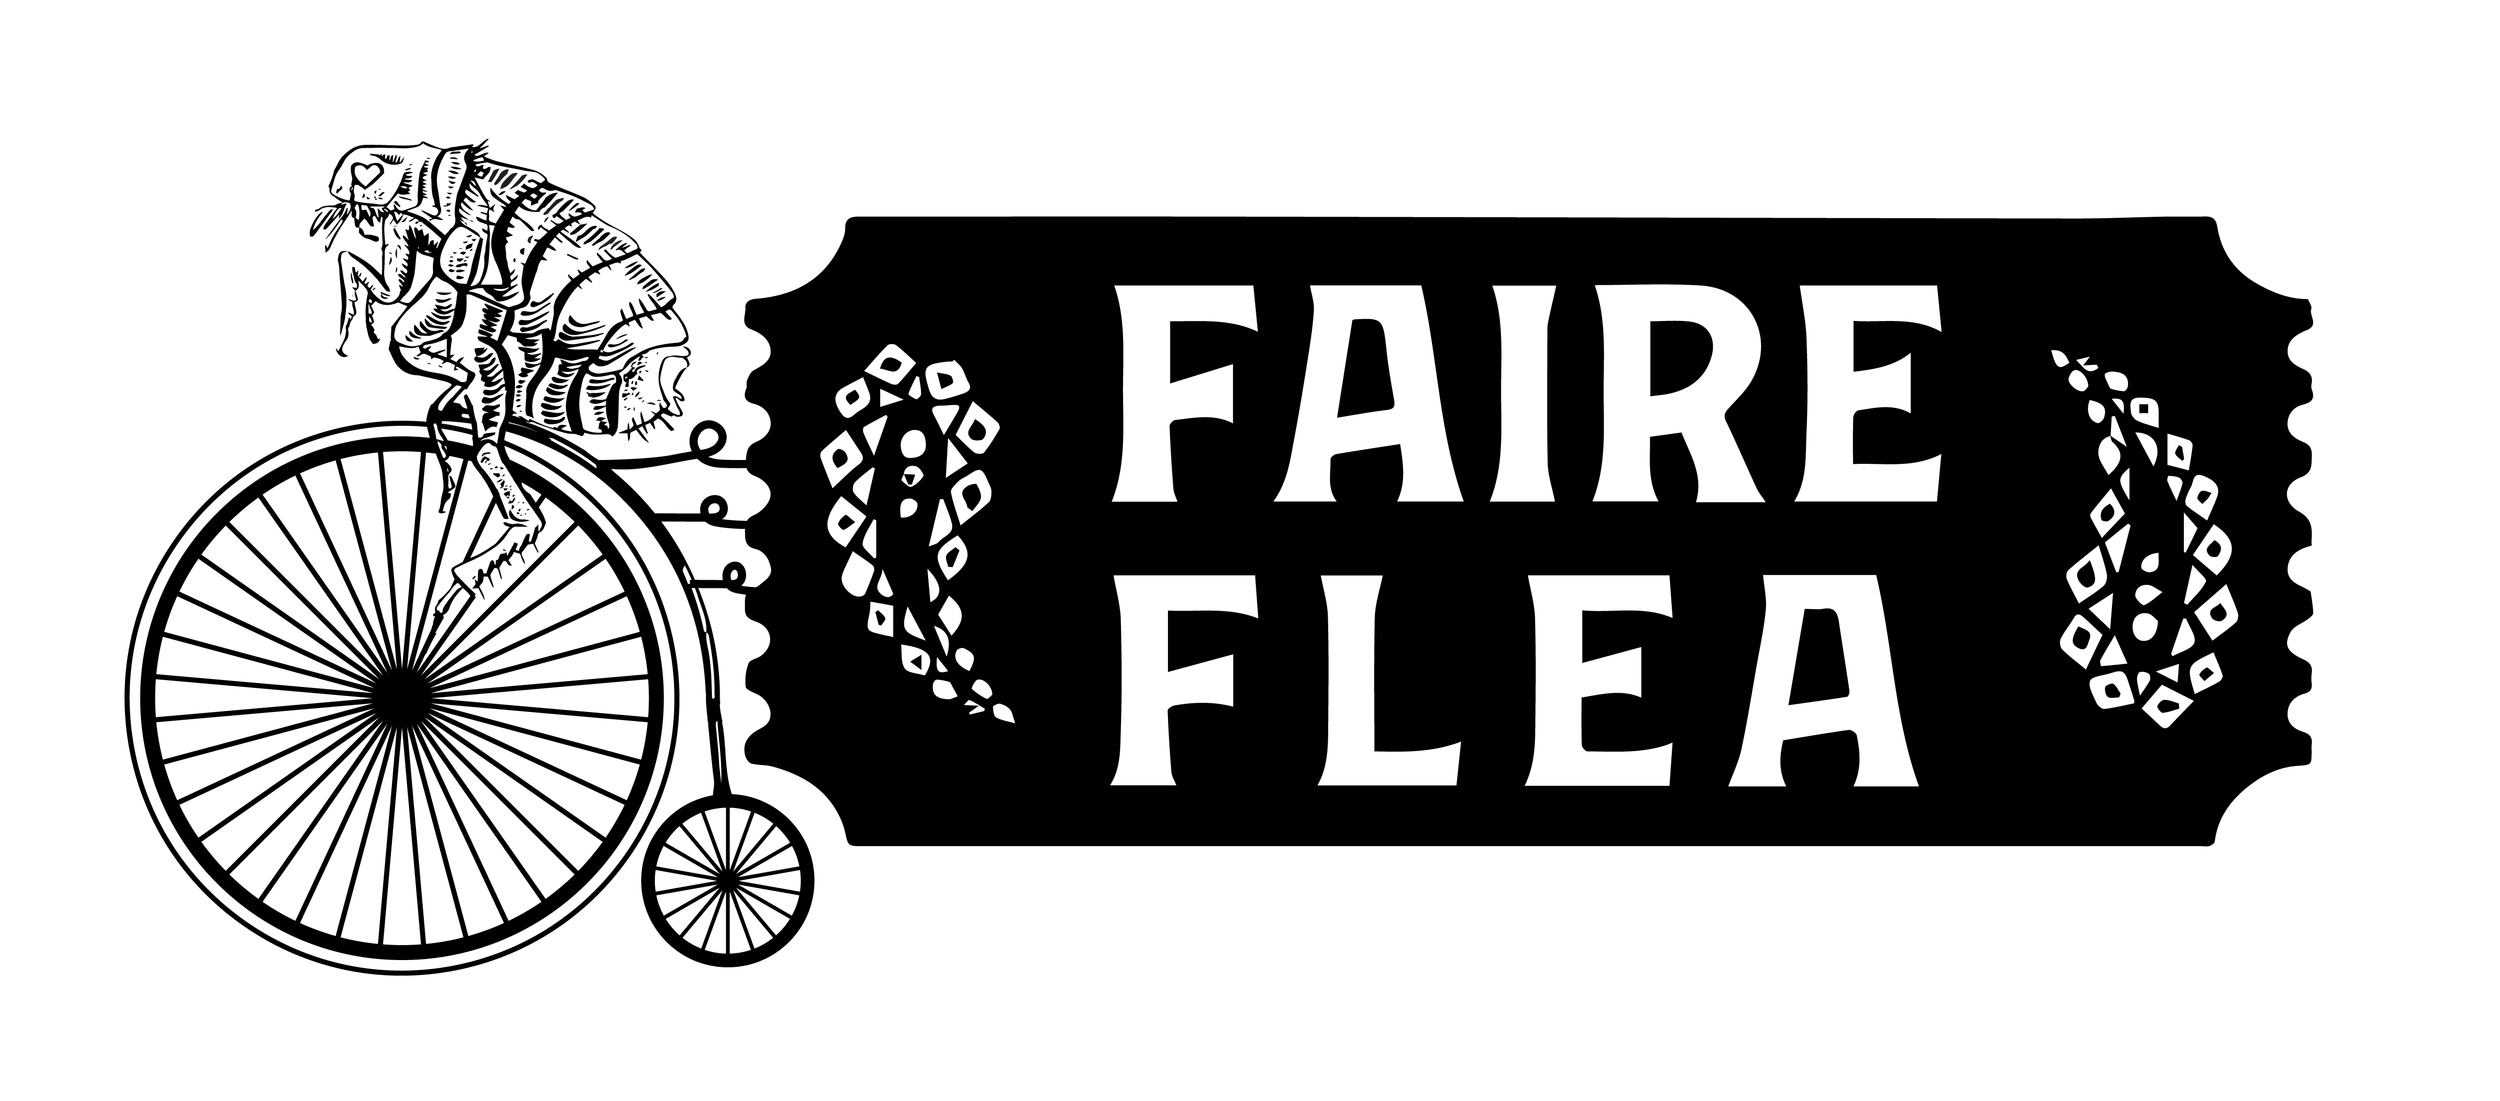 faireflea.bike-01.png